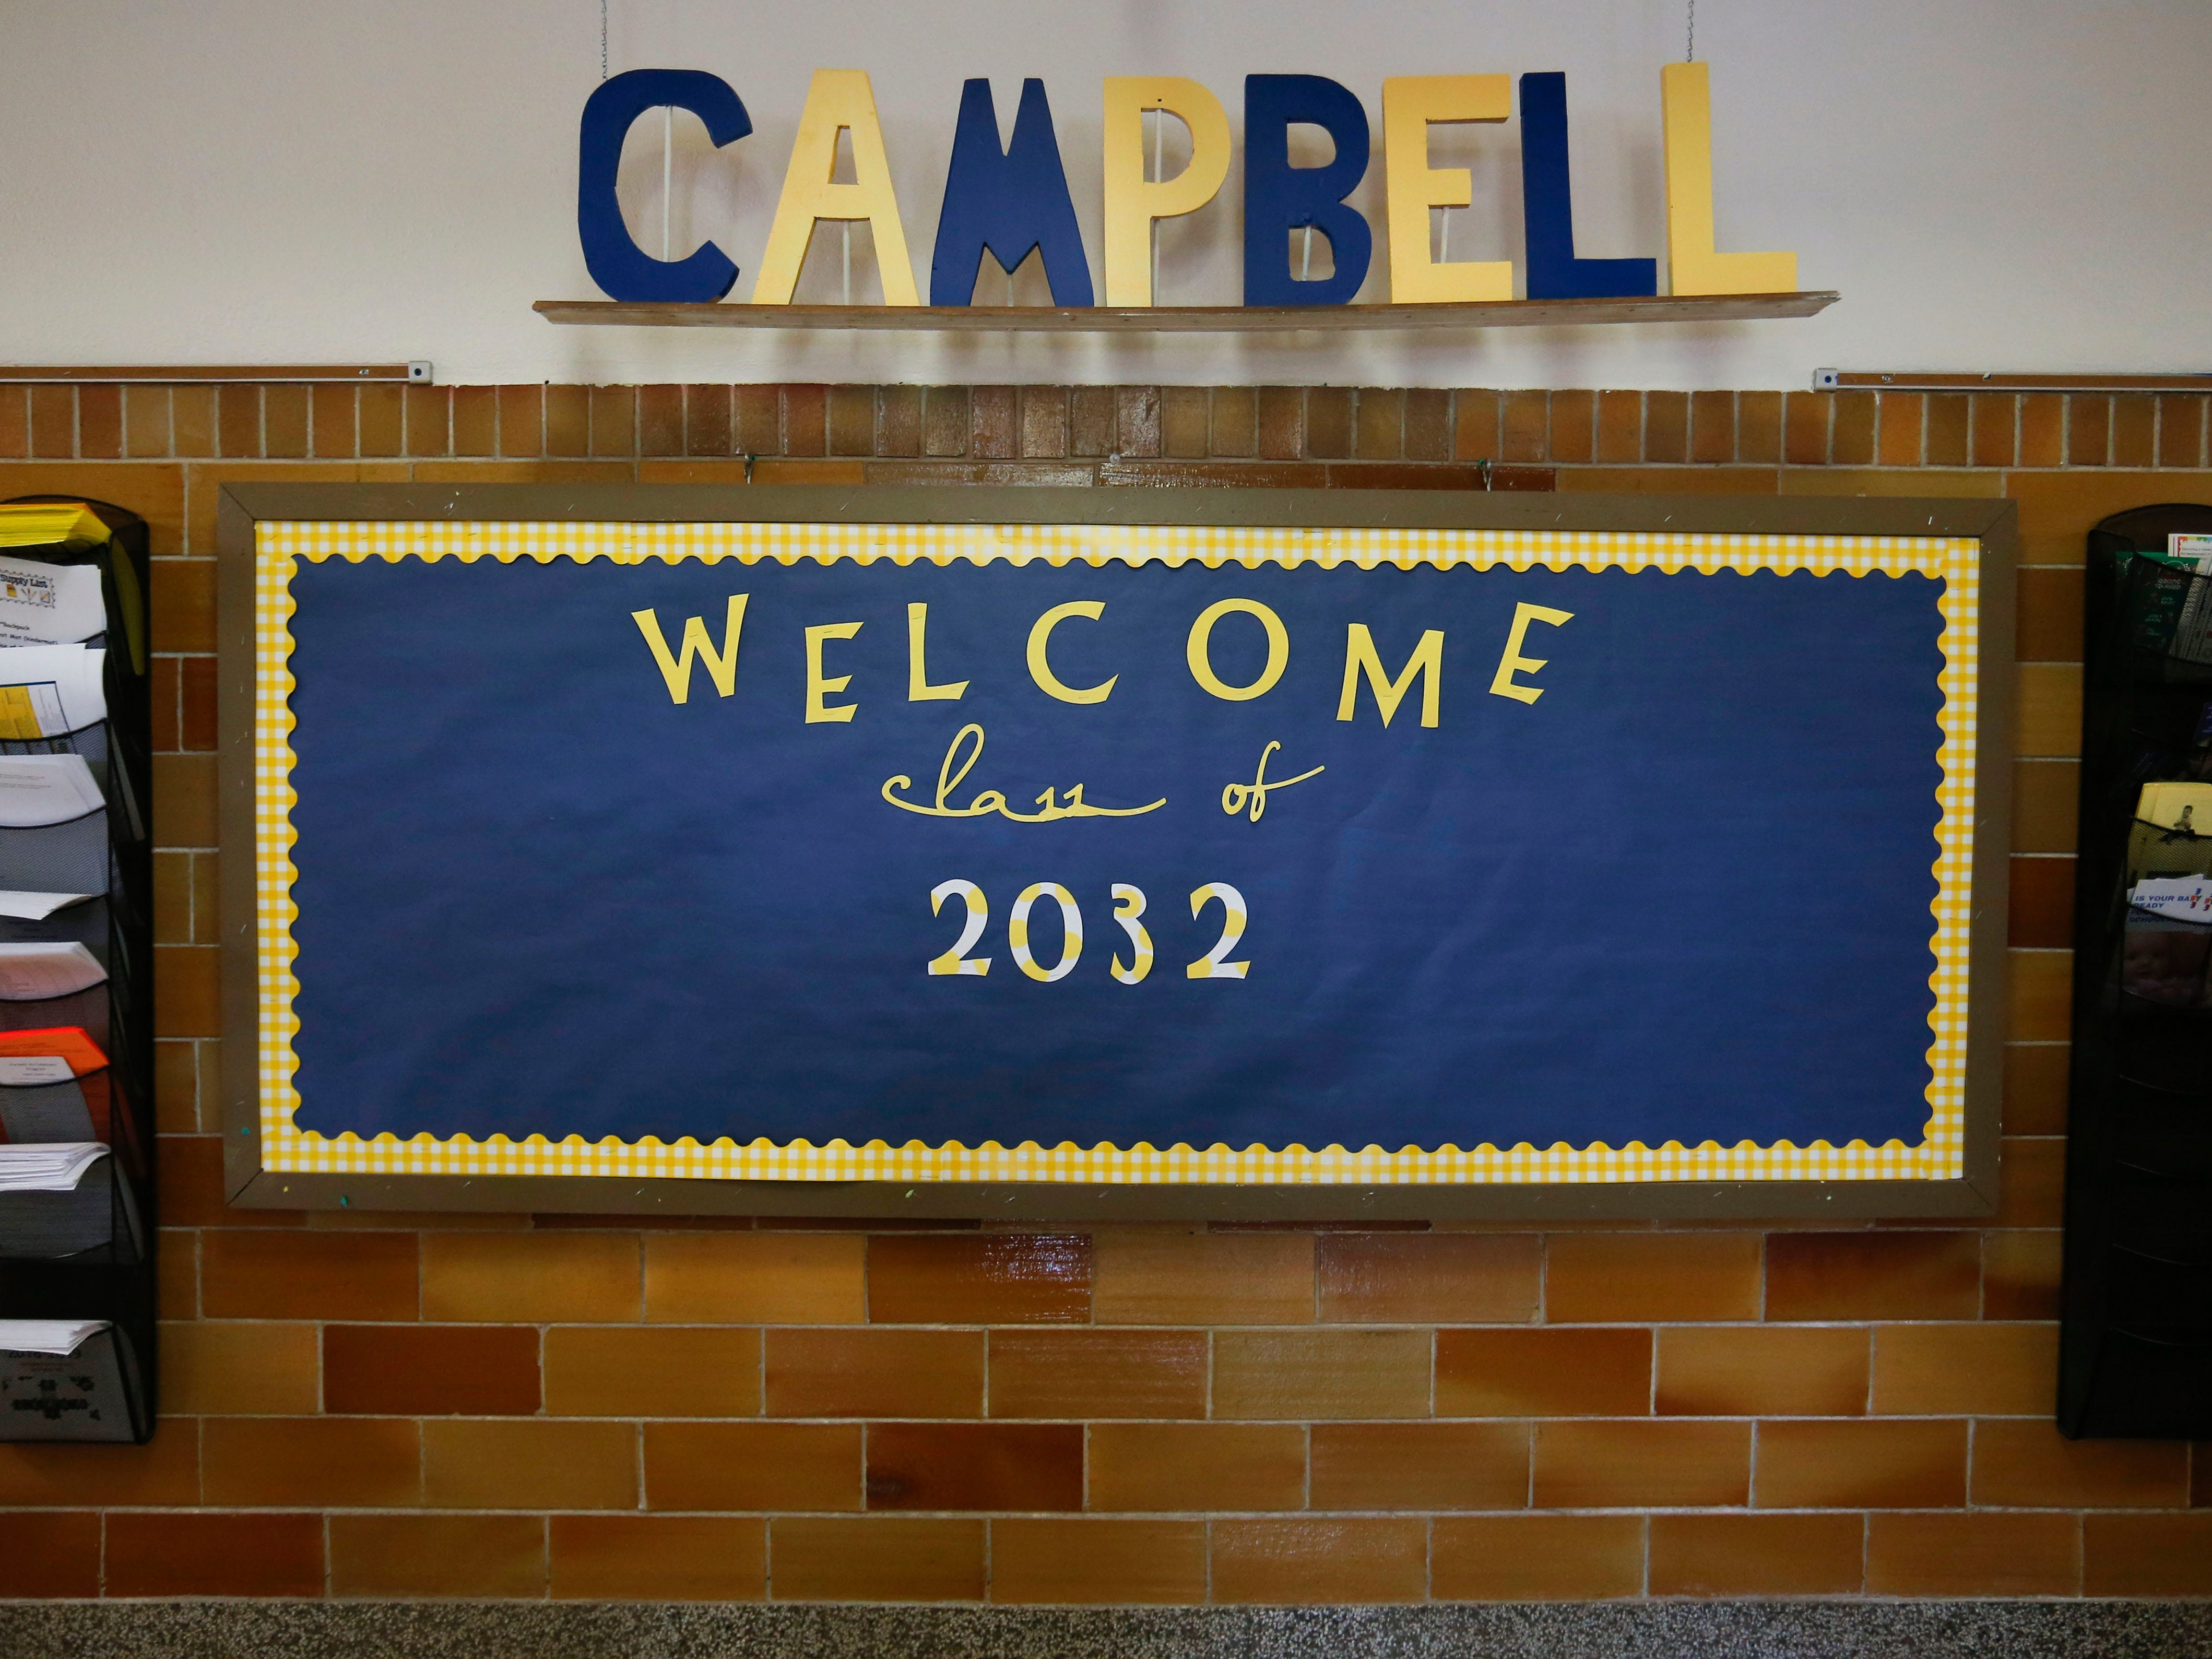 A look inside the Campbell Early Childhood Center on Thursday, Sept. 26, 2018.